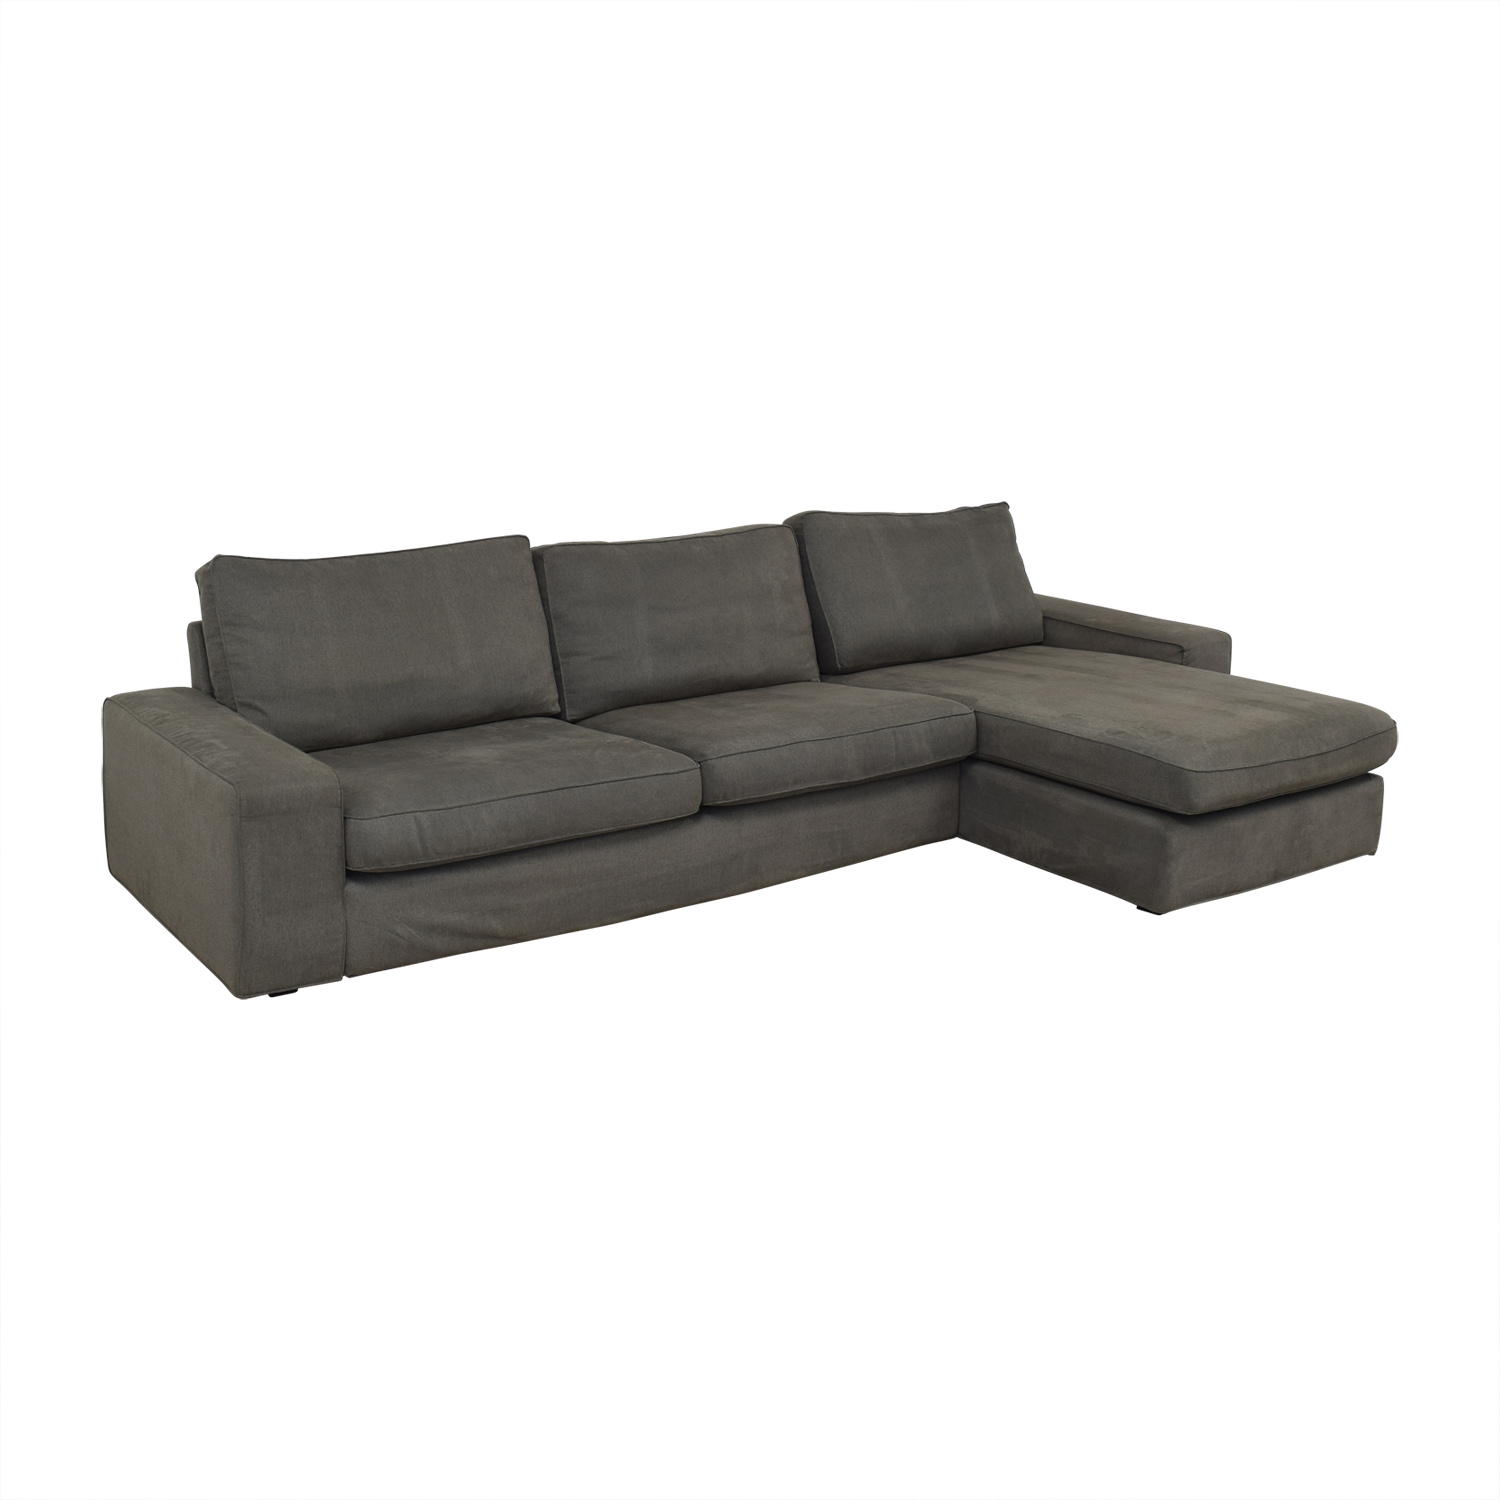 Wondrous 26 Off Ikea Ikea Kivik Sectional Sofa Sofas Pabps2019 Chair Design Images Pabps2019Com